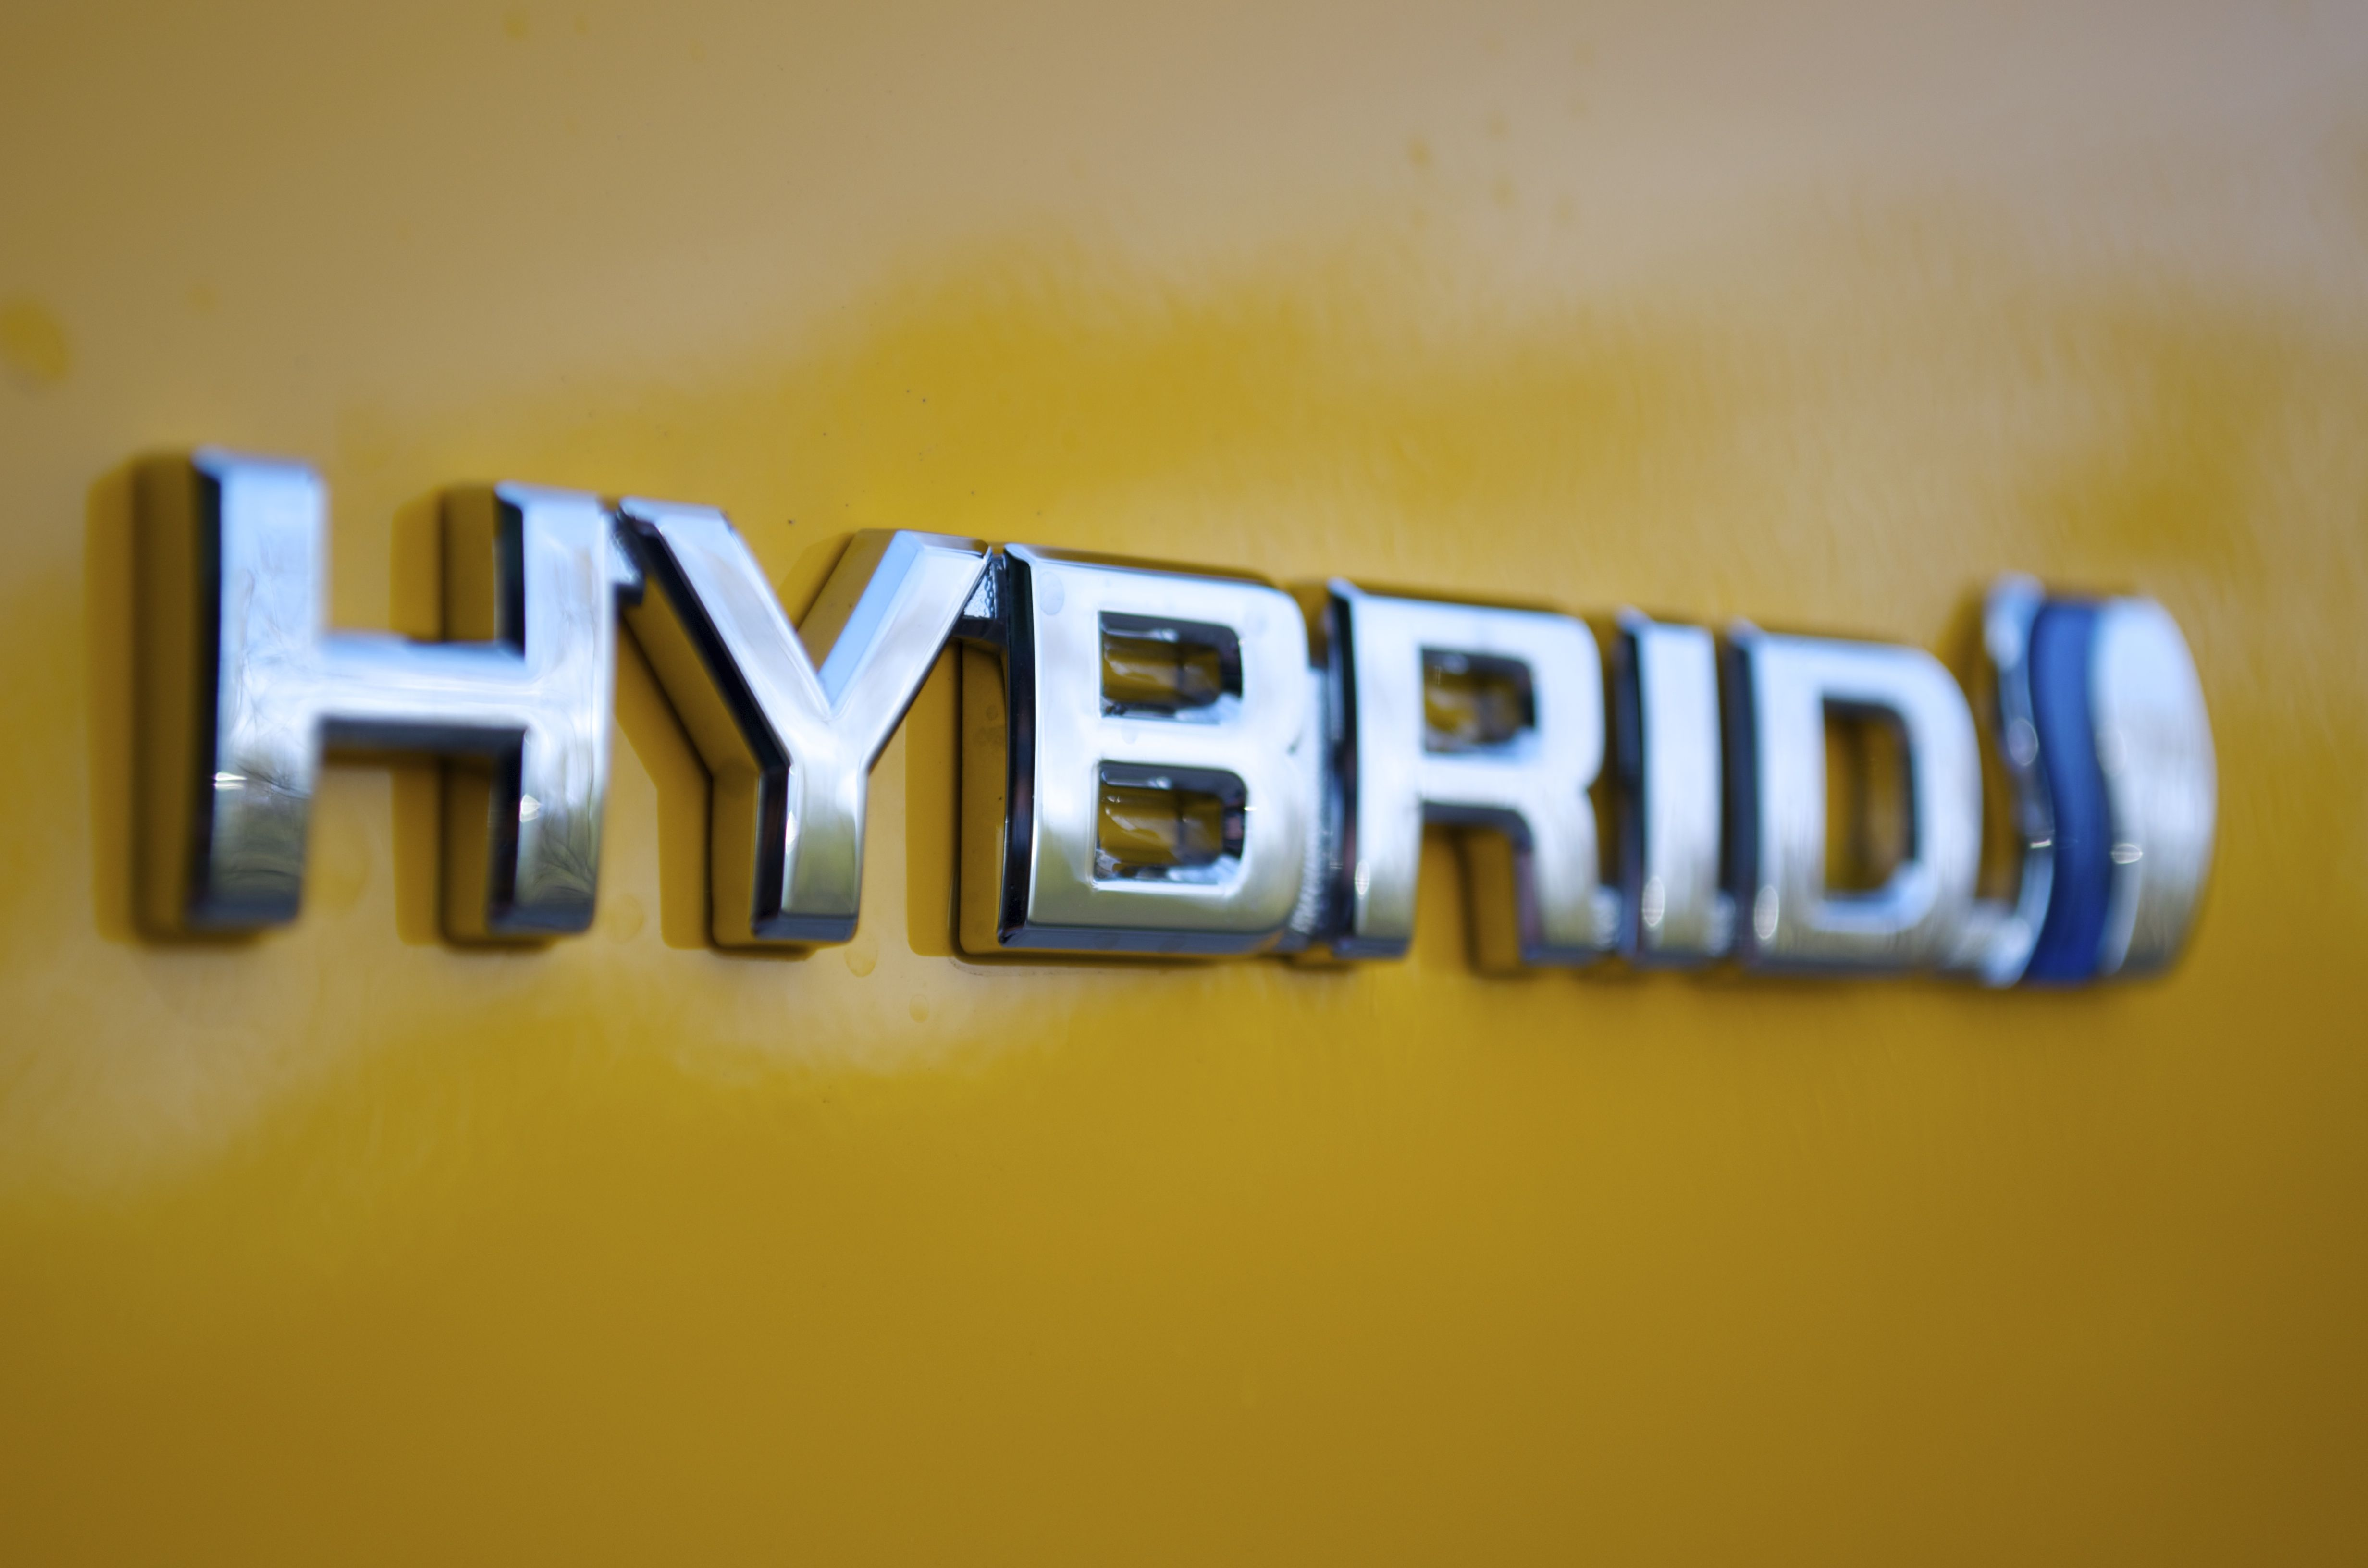 Toyota to Boost Hybrid Efficiency 10% With New Chips